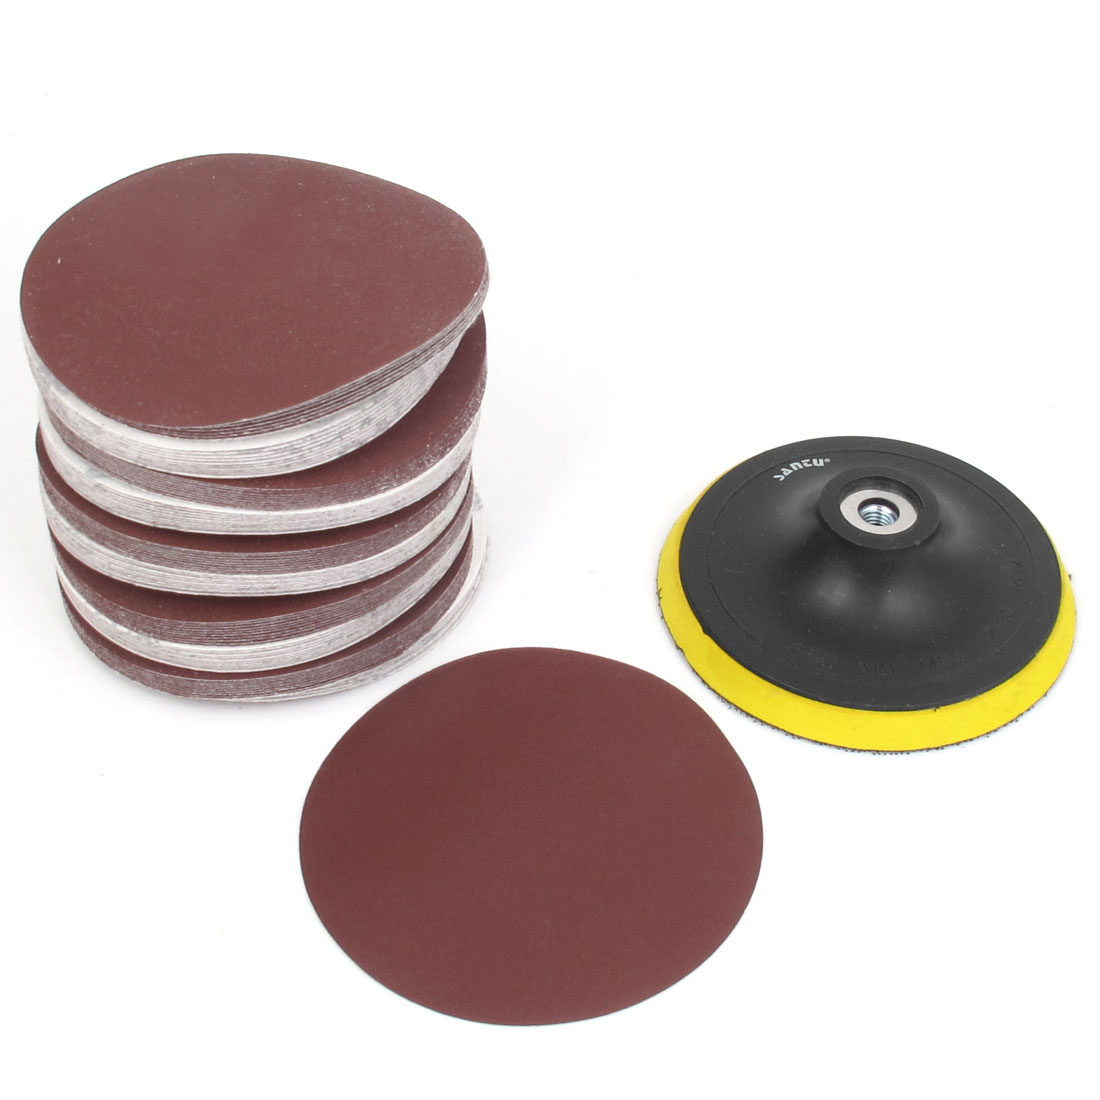 "9mm Thread 5"" Dia Sanding Disc Wheel w 100pcs 5"" Sandpapers"